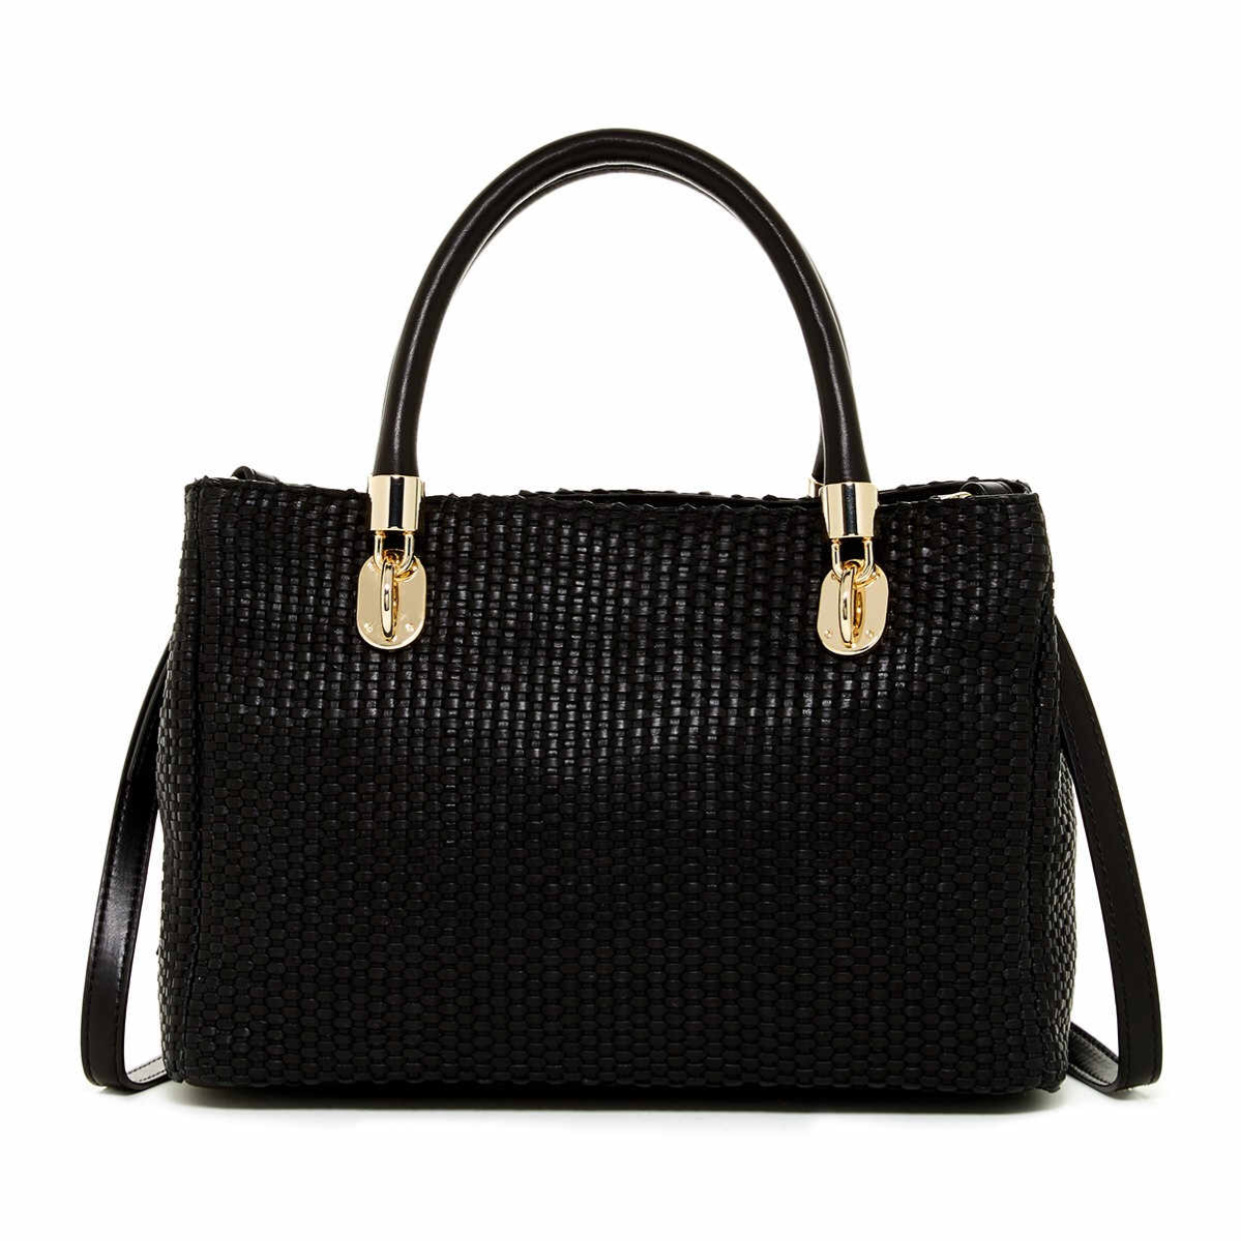 Leather Crochet Bag : SALE price COLE HAAN Benson leather crochet bags - BUYMA